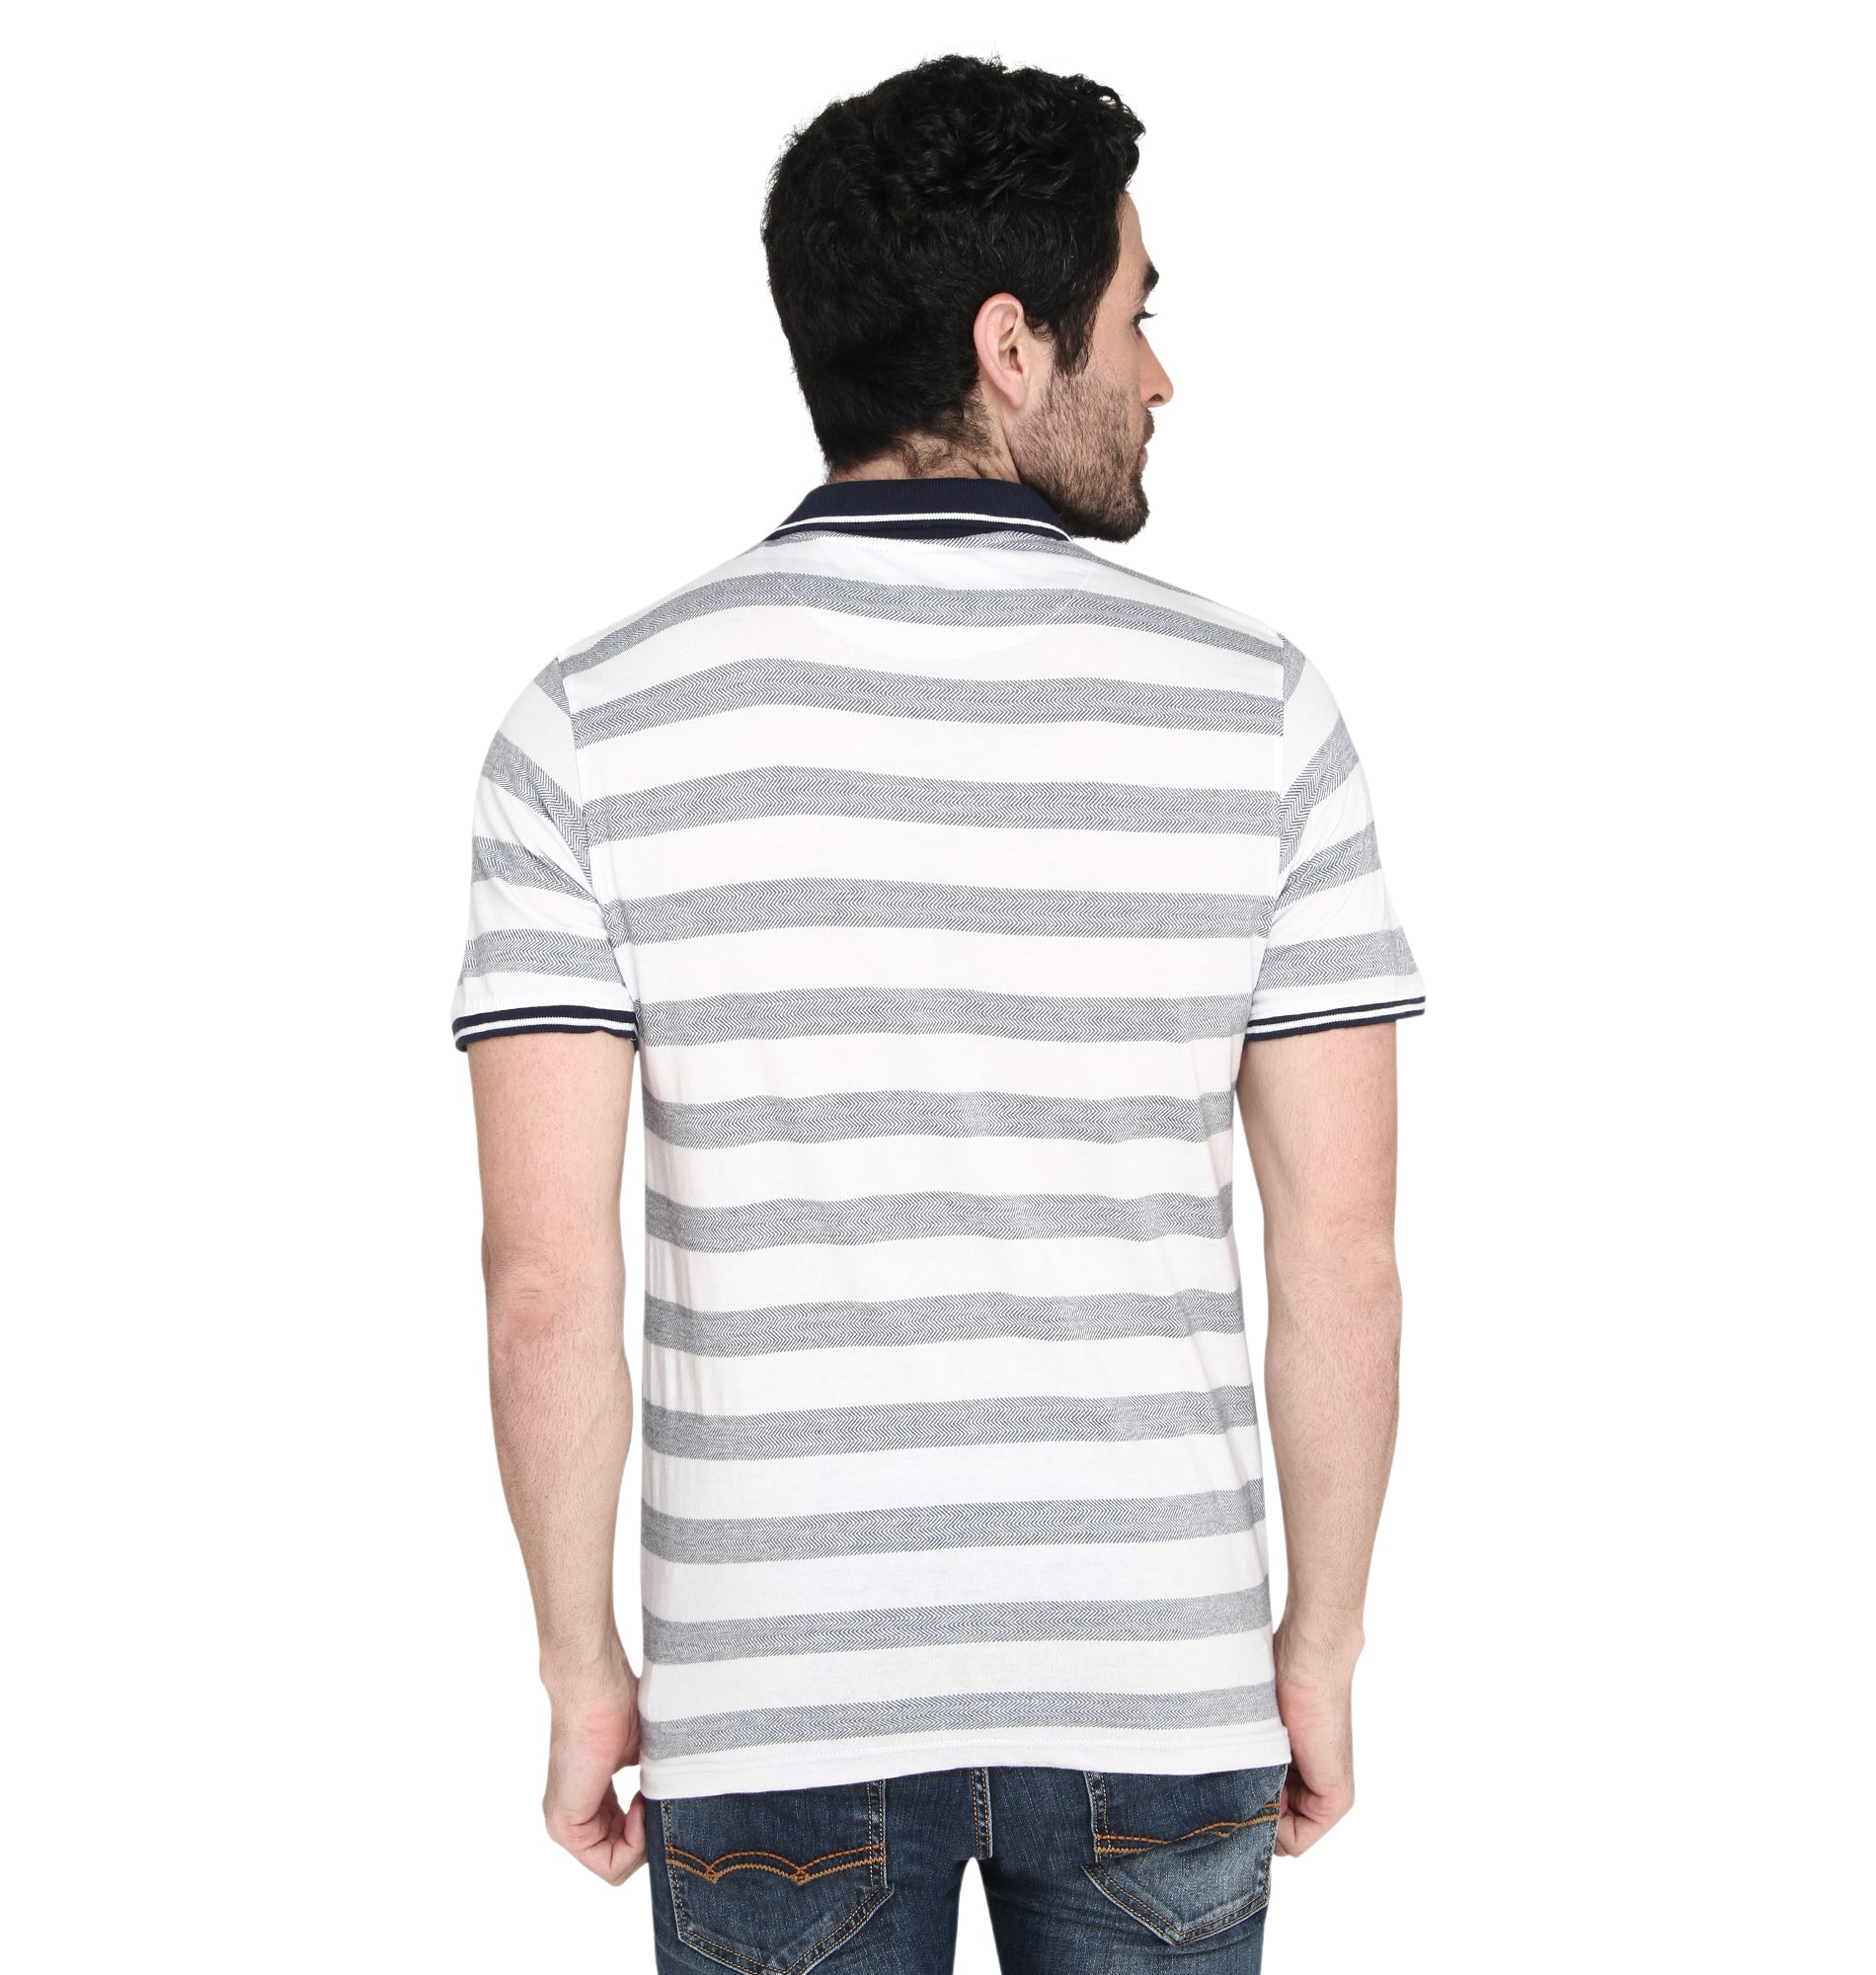 ZIDO Regular Fit Multicolor COTTON Striped T-Shirt for Men's TSHSTP106